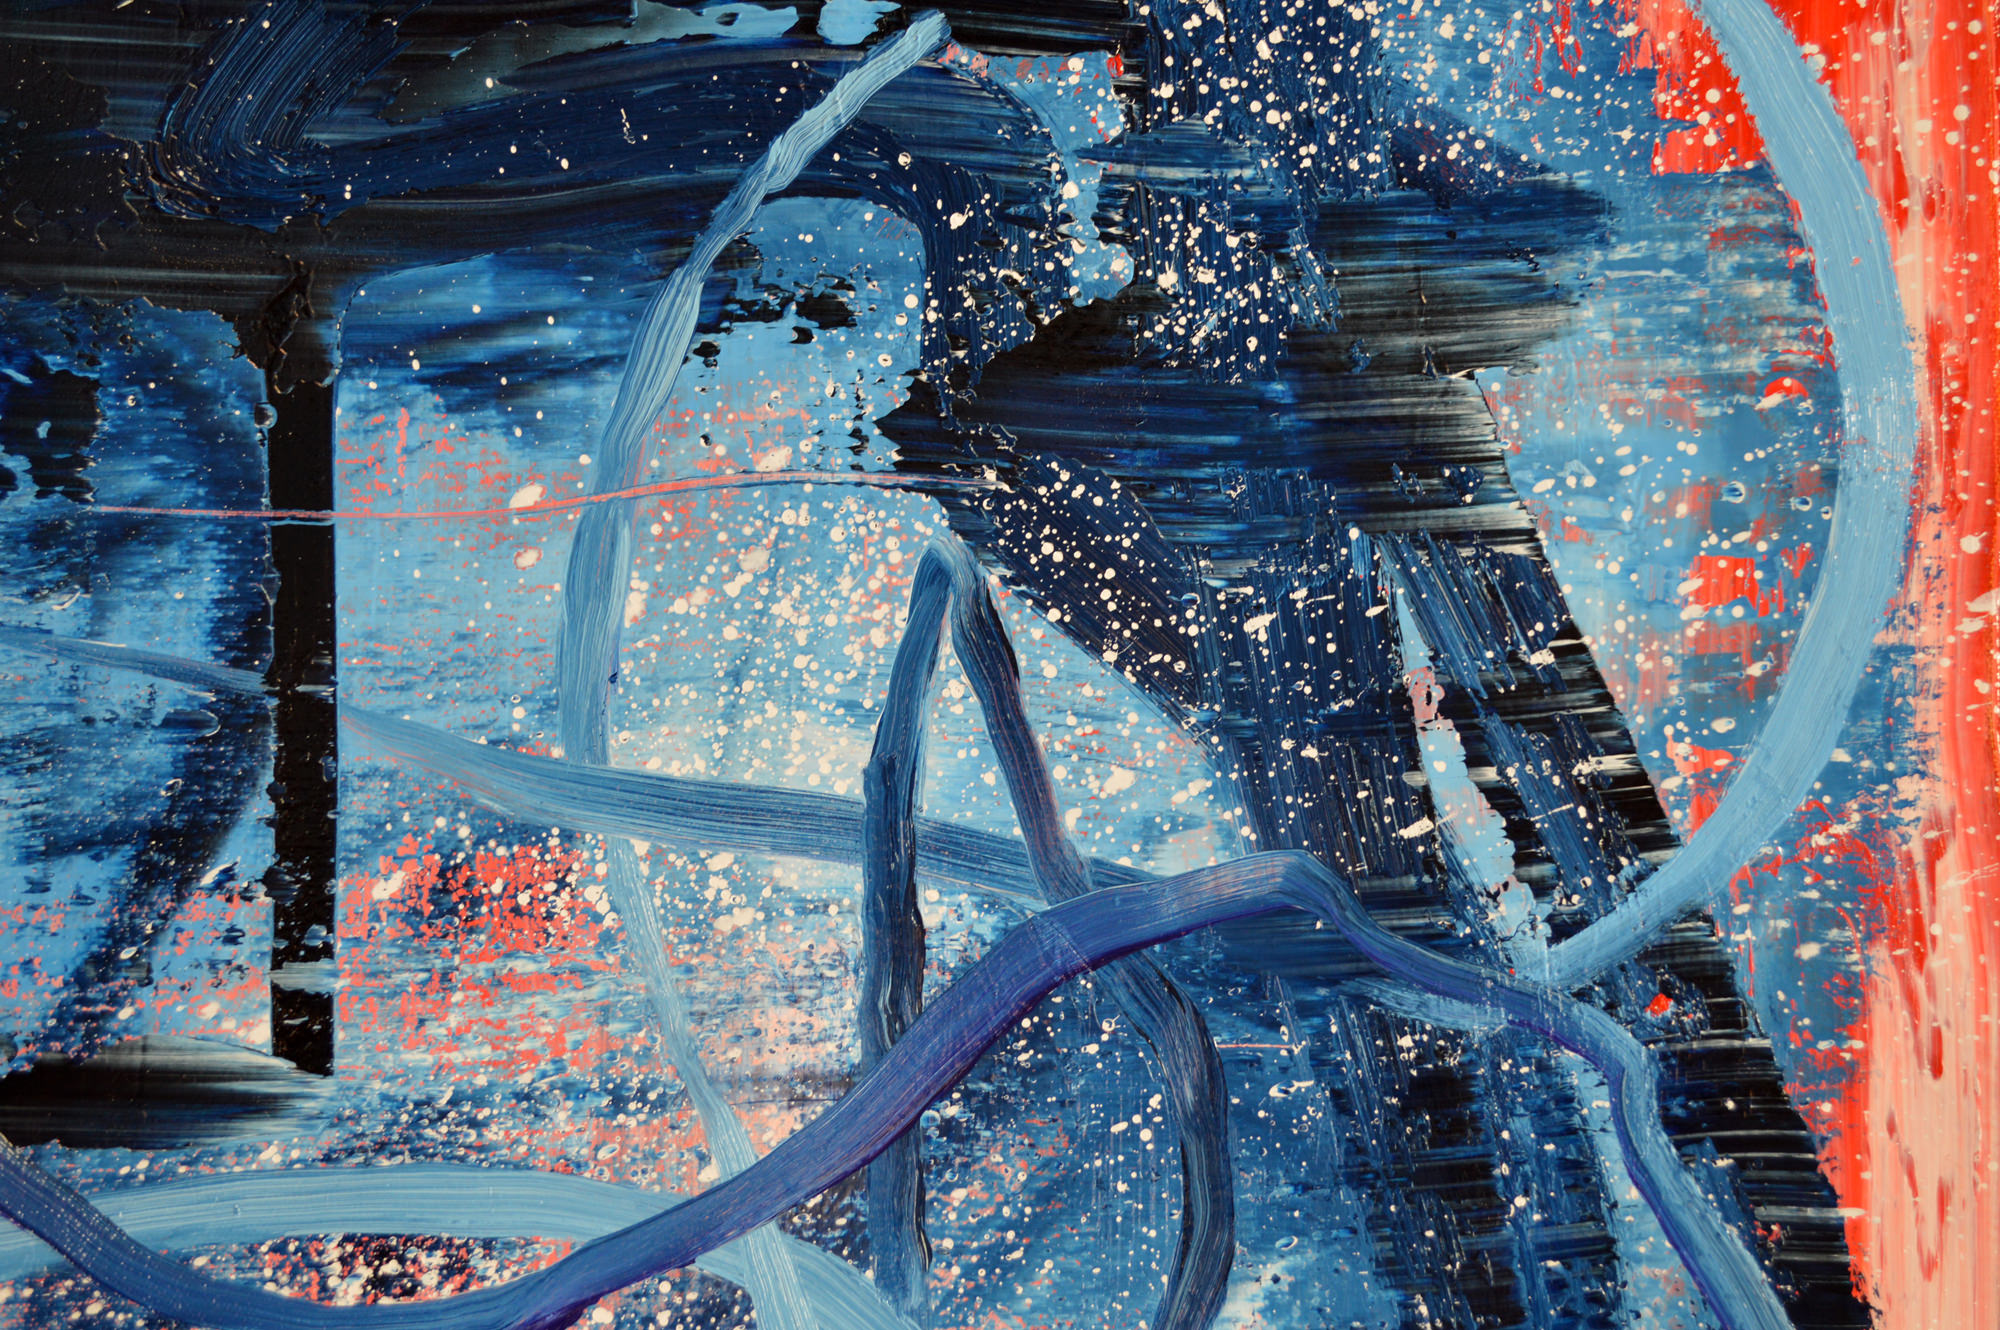 Robert West. Borderline Series. Abstract Painting No.75. Oil on Canvas. 200 x 200 cm. 2013-2014 -  Close Up 02.jpg